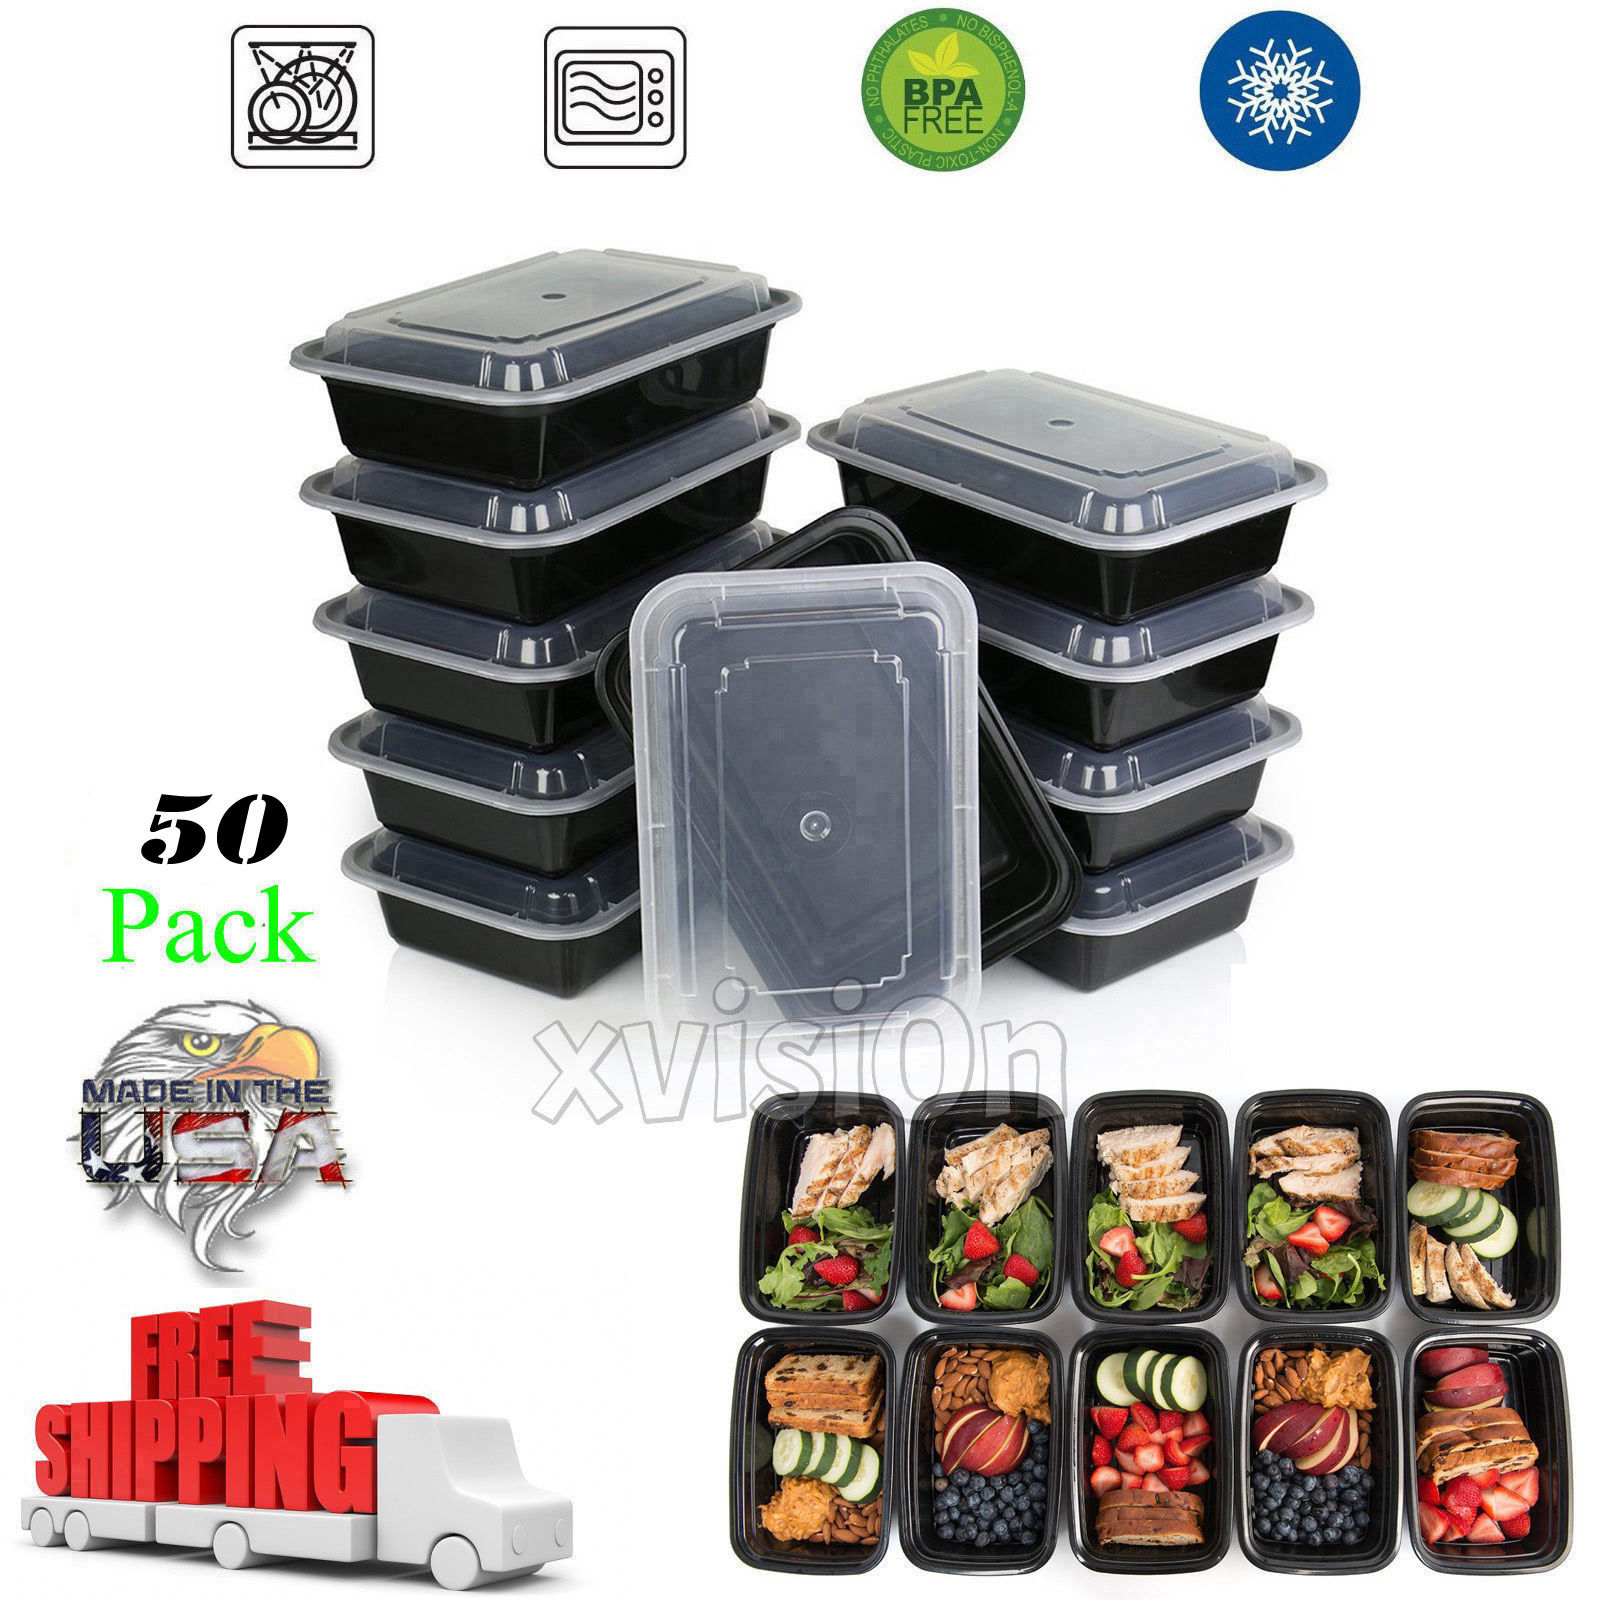 50 Meal Prep Containers 1 Compartment Plastic Food Storage Reusable Microwavable 1